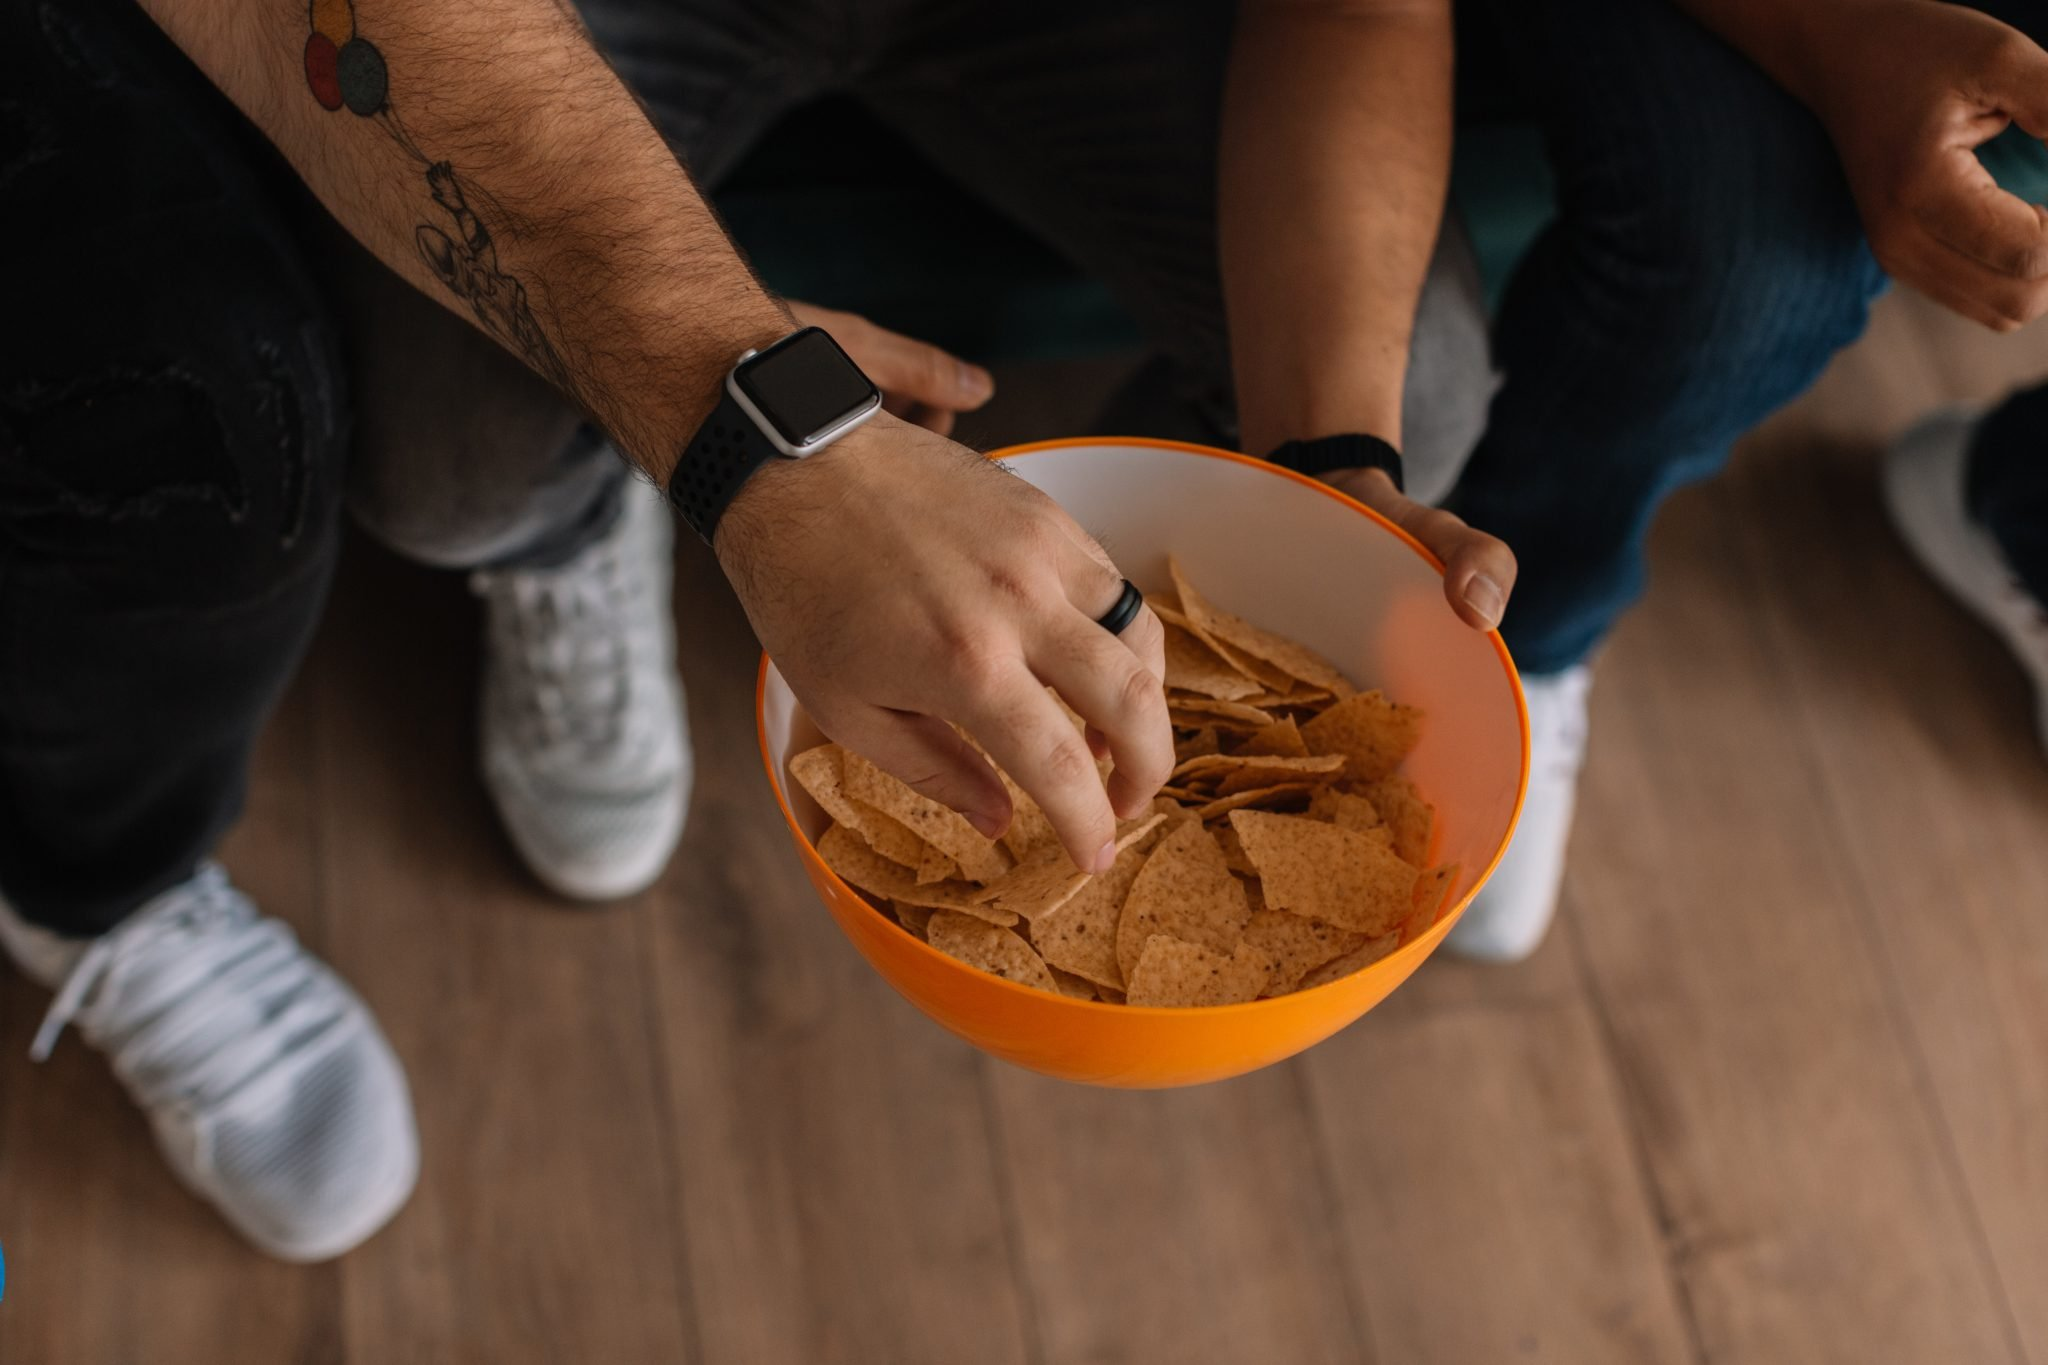 Snacking on chips from a bowl.